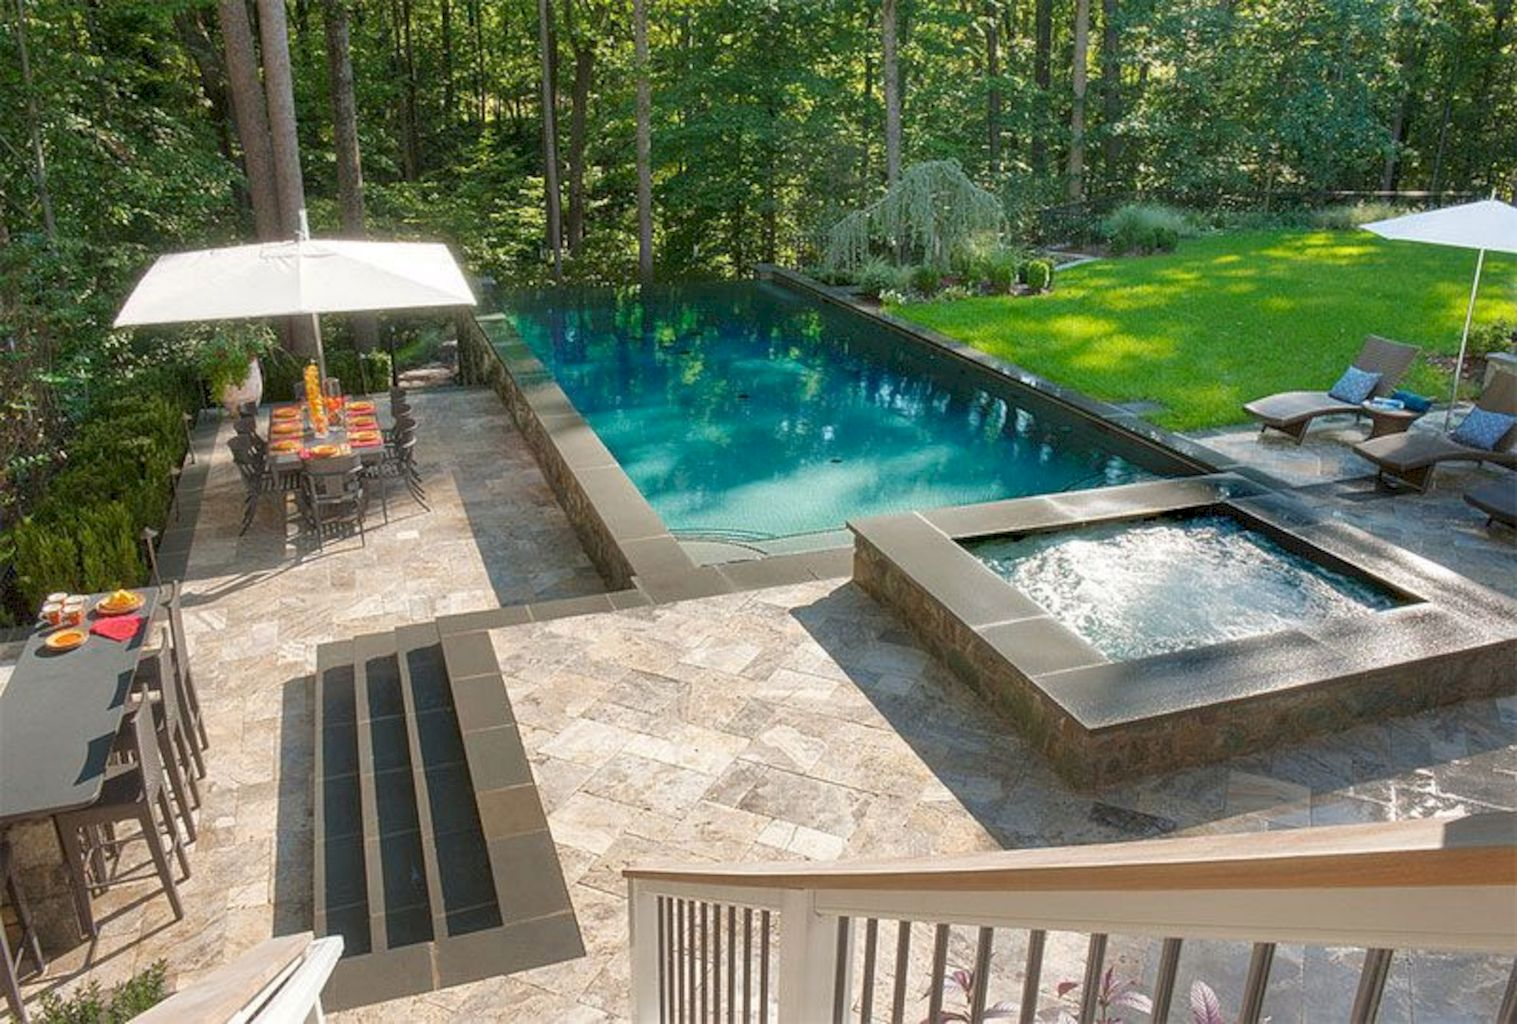 Affordable rectangular pool designs with stone sidings that give a lavish look perfect for summer outdoor parties (1)